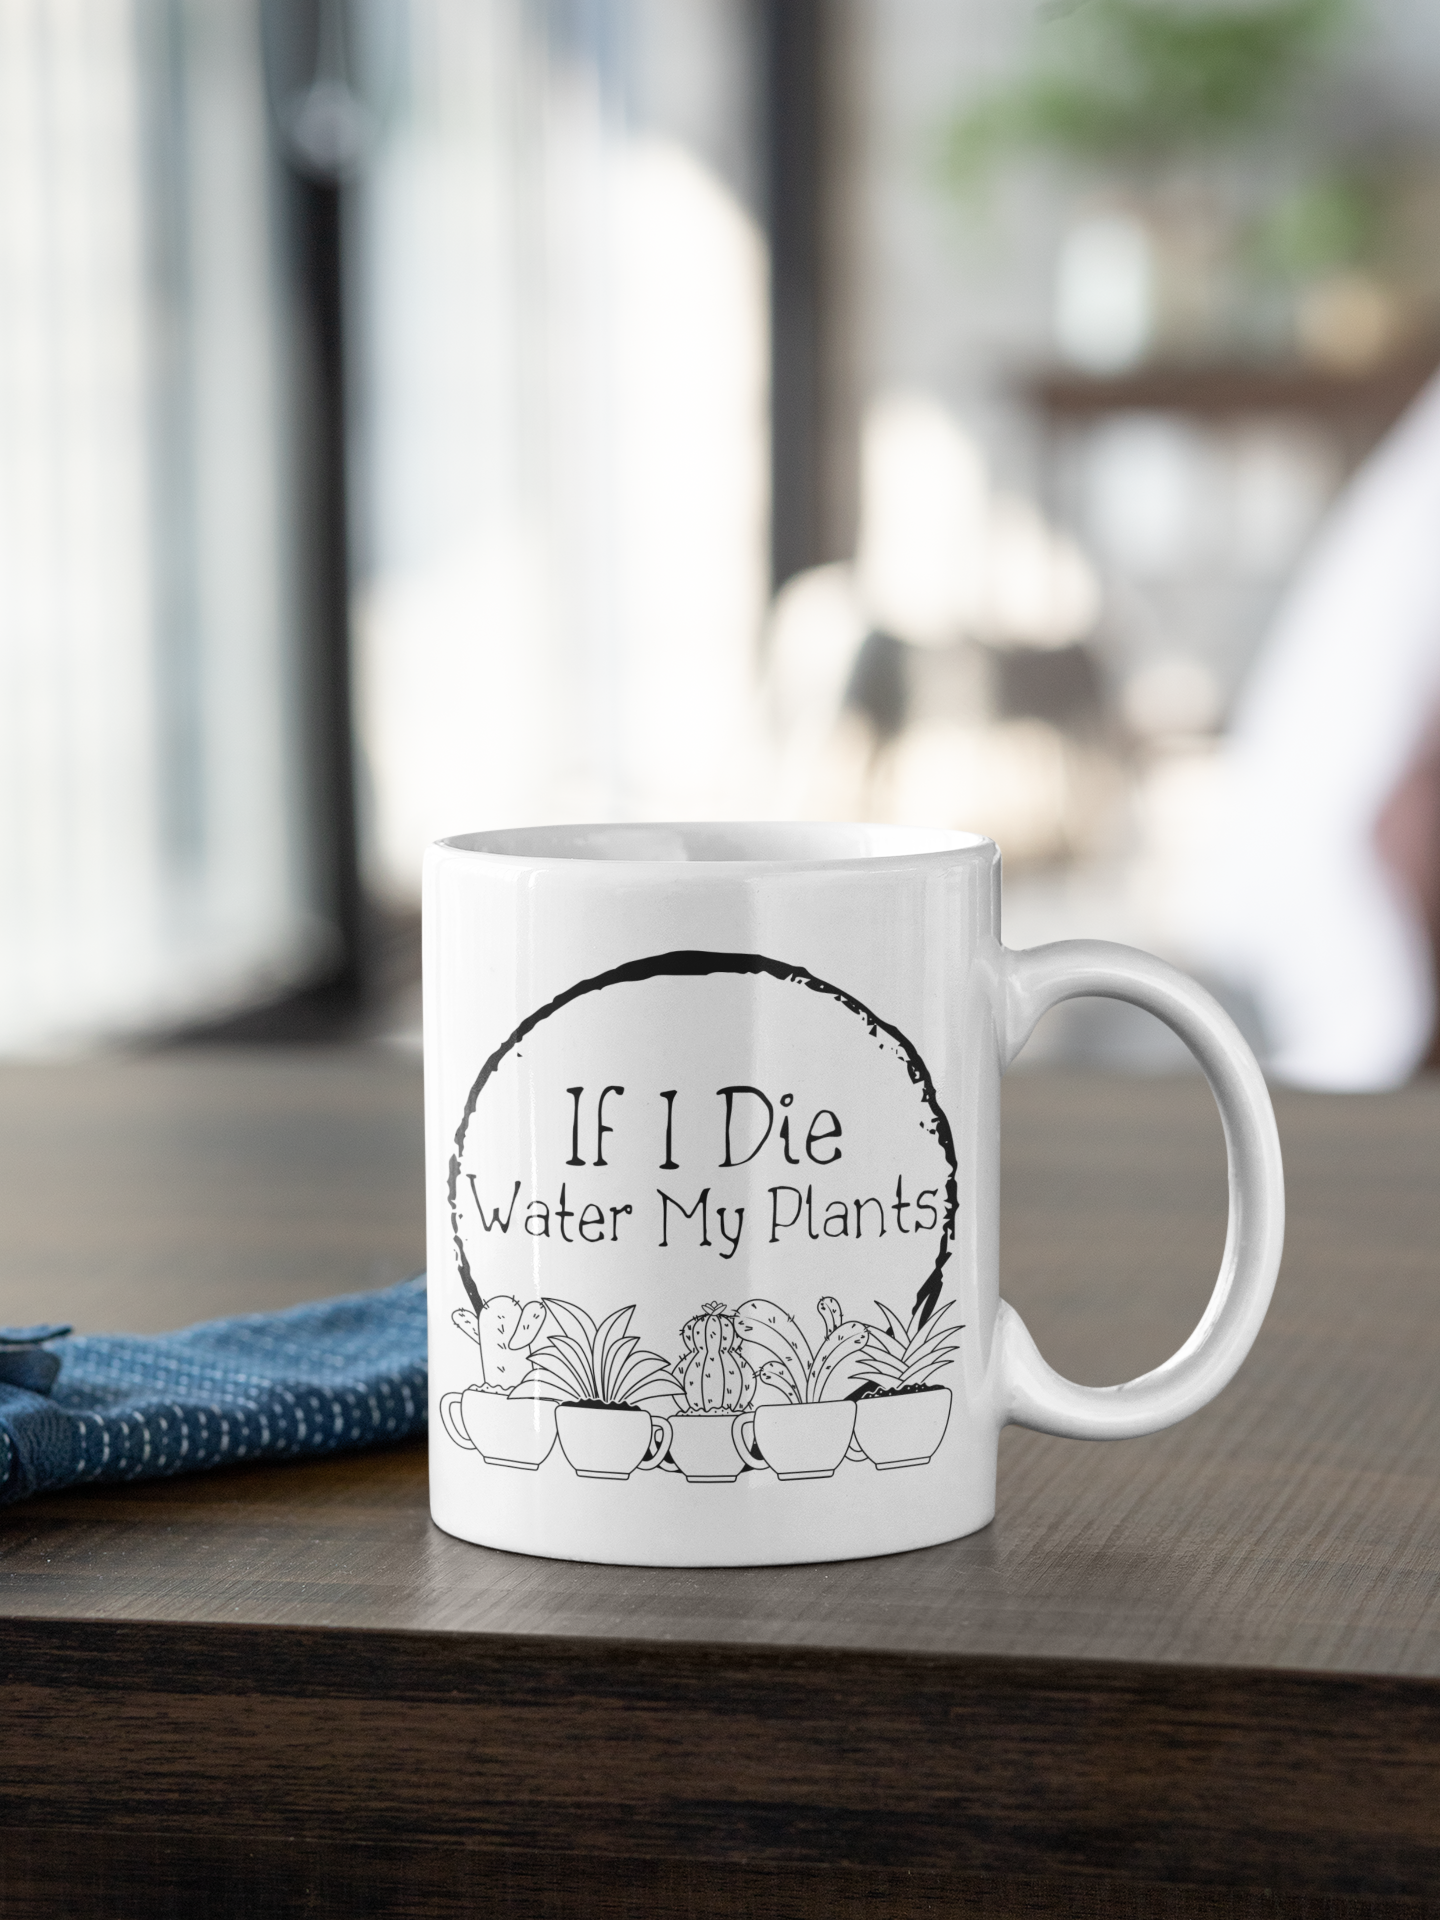 If I Die Water My Plants Gift Mug for Plant Lovers, Funny